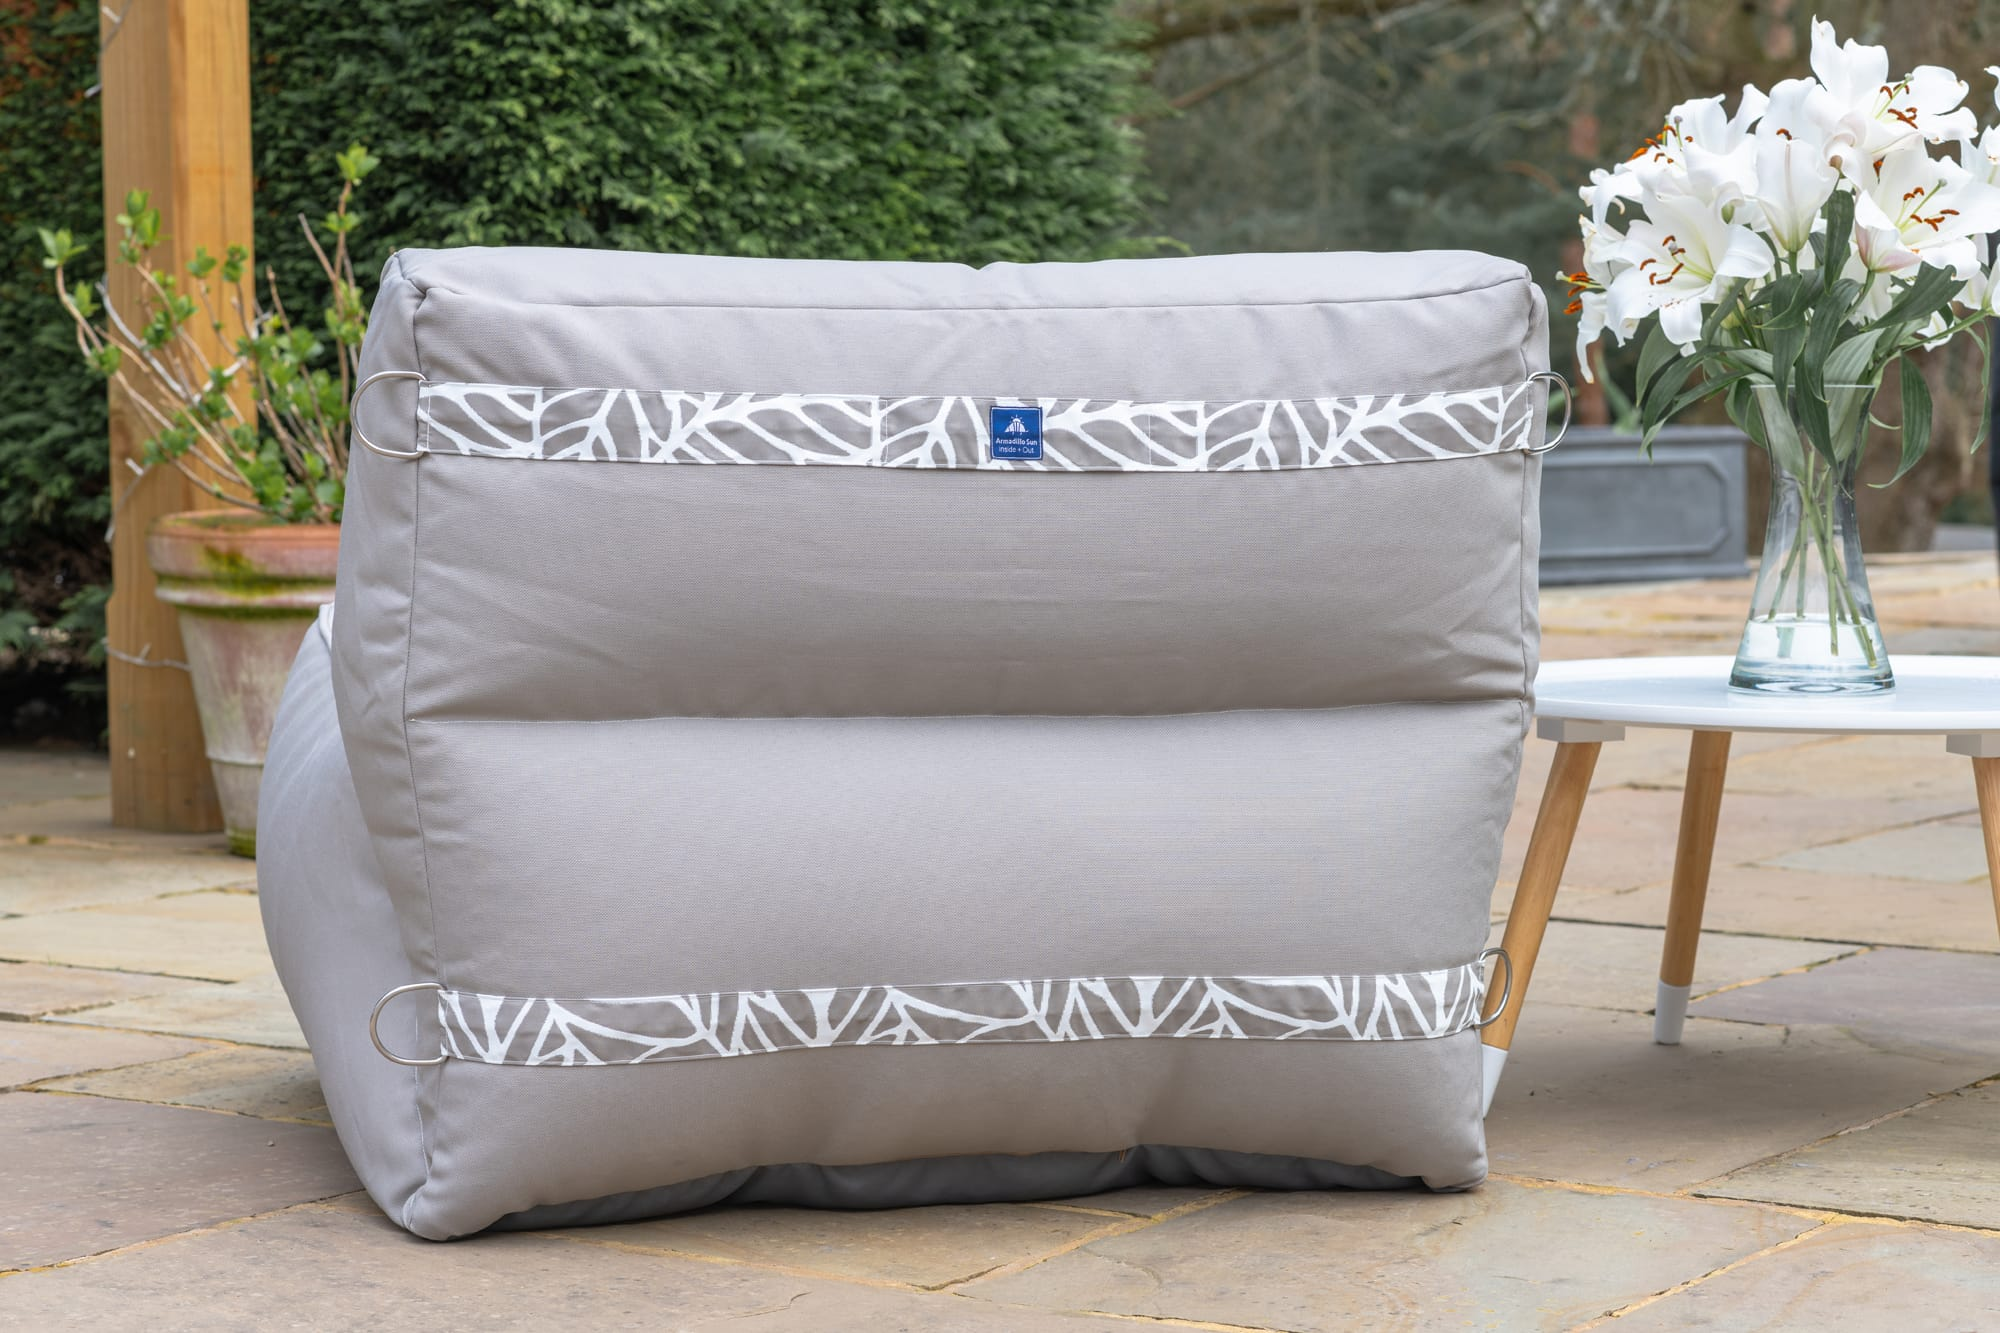 Monaco Modular Bean Bag Chair in Pumice with Palm Patterned Straps Monaco armadillosun